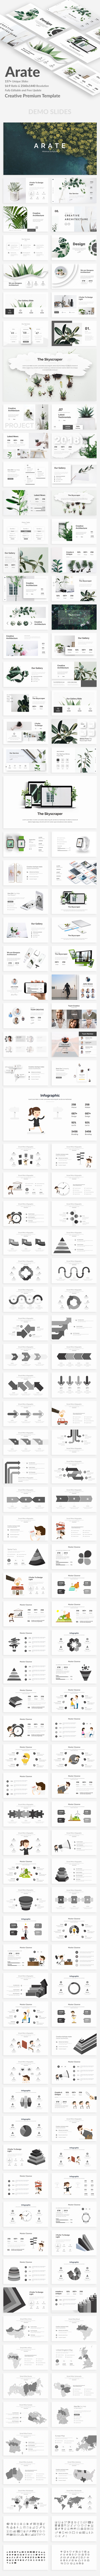 Arate Minimal Google Slide Template - Google Slides Presentation Templates